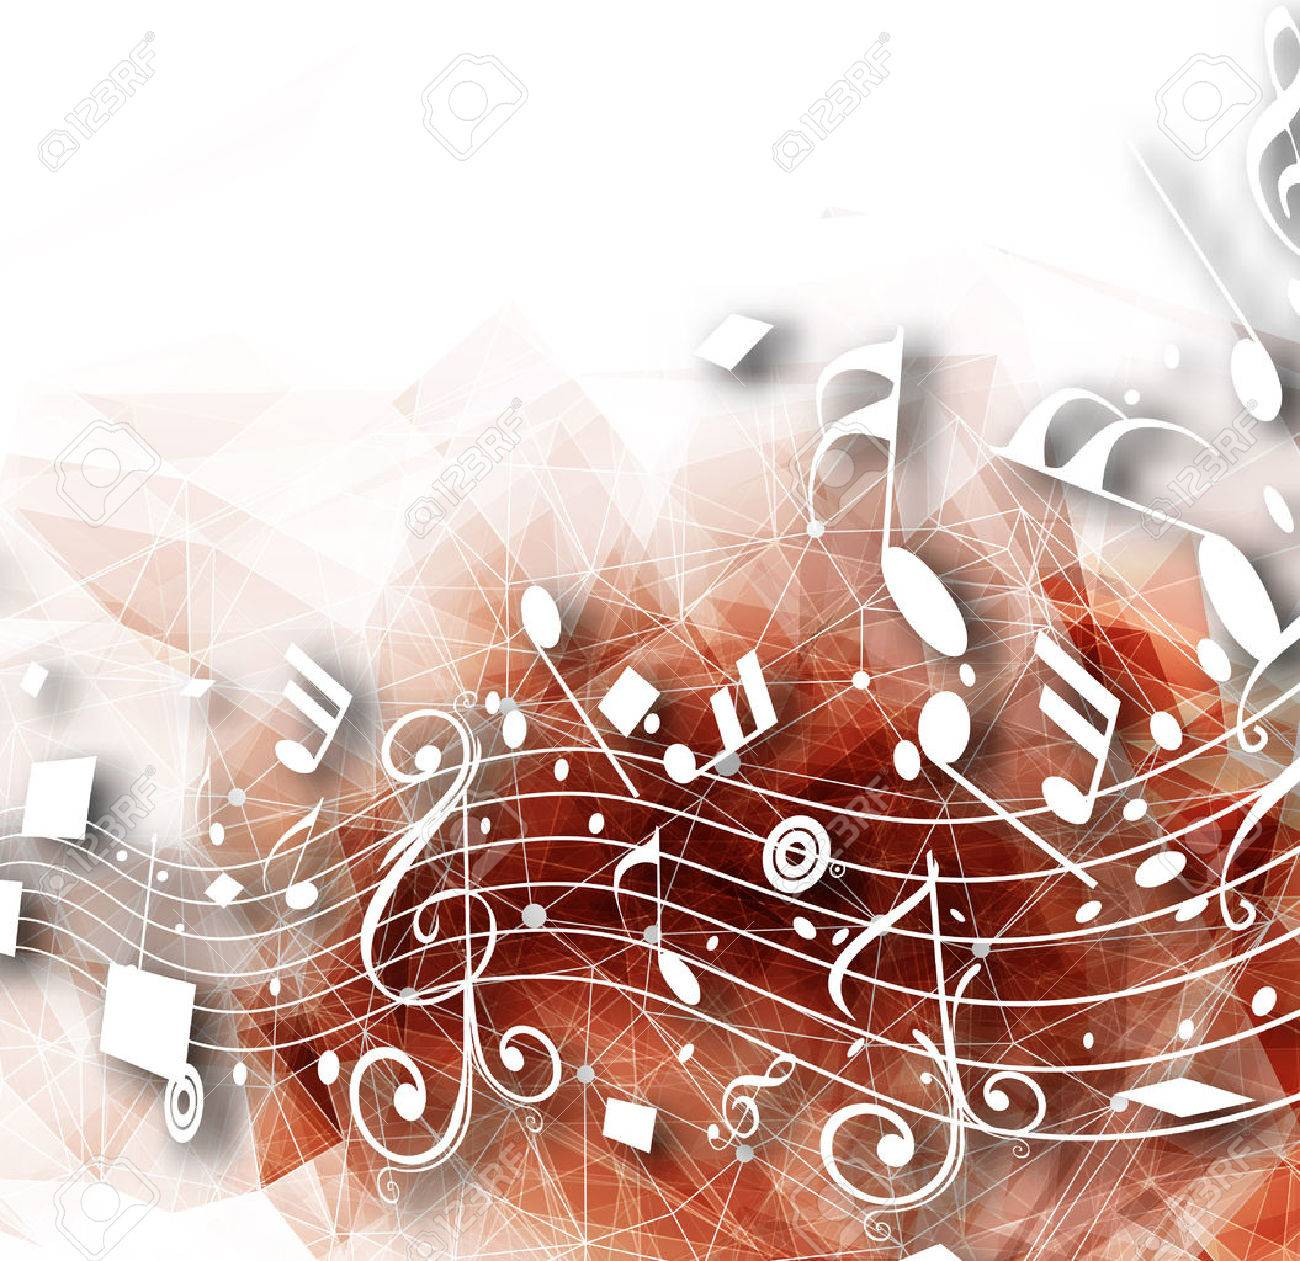 Abstract musical notes background for design use. - 51158690